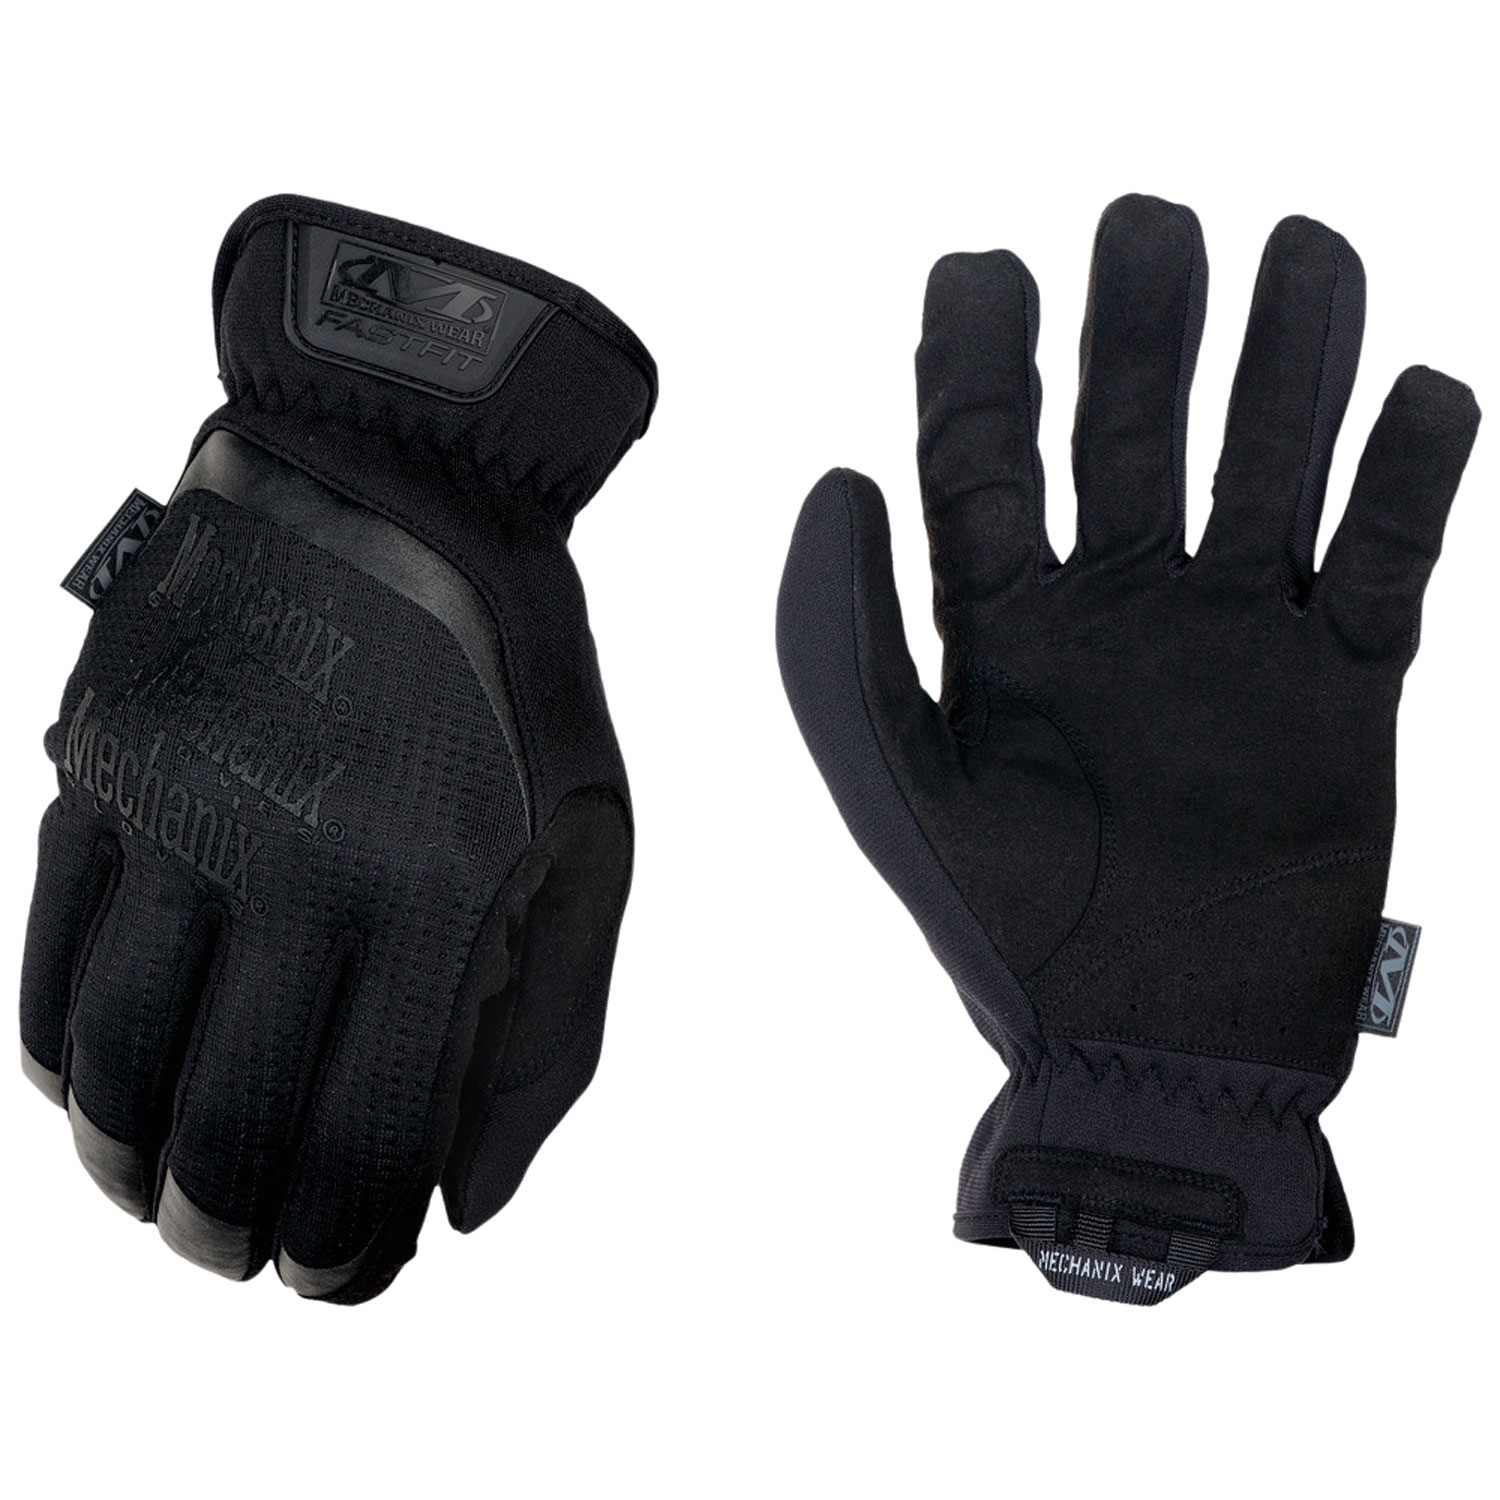 MECHANIX WEAR FFTAB-55-012 FastFit Covert 2XL Black Synthetic Leather Touchscreen